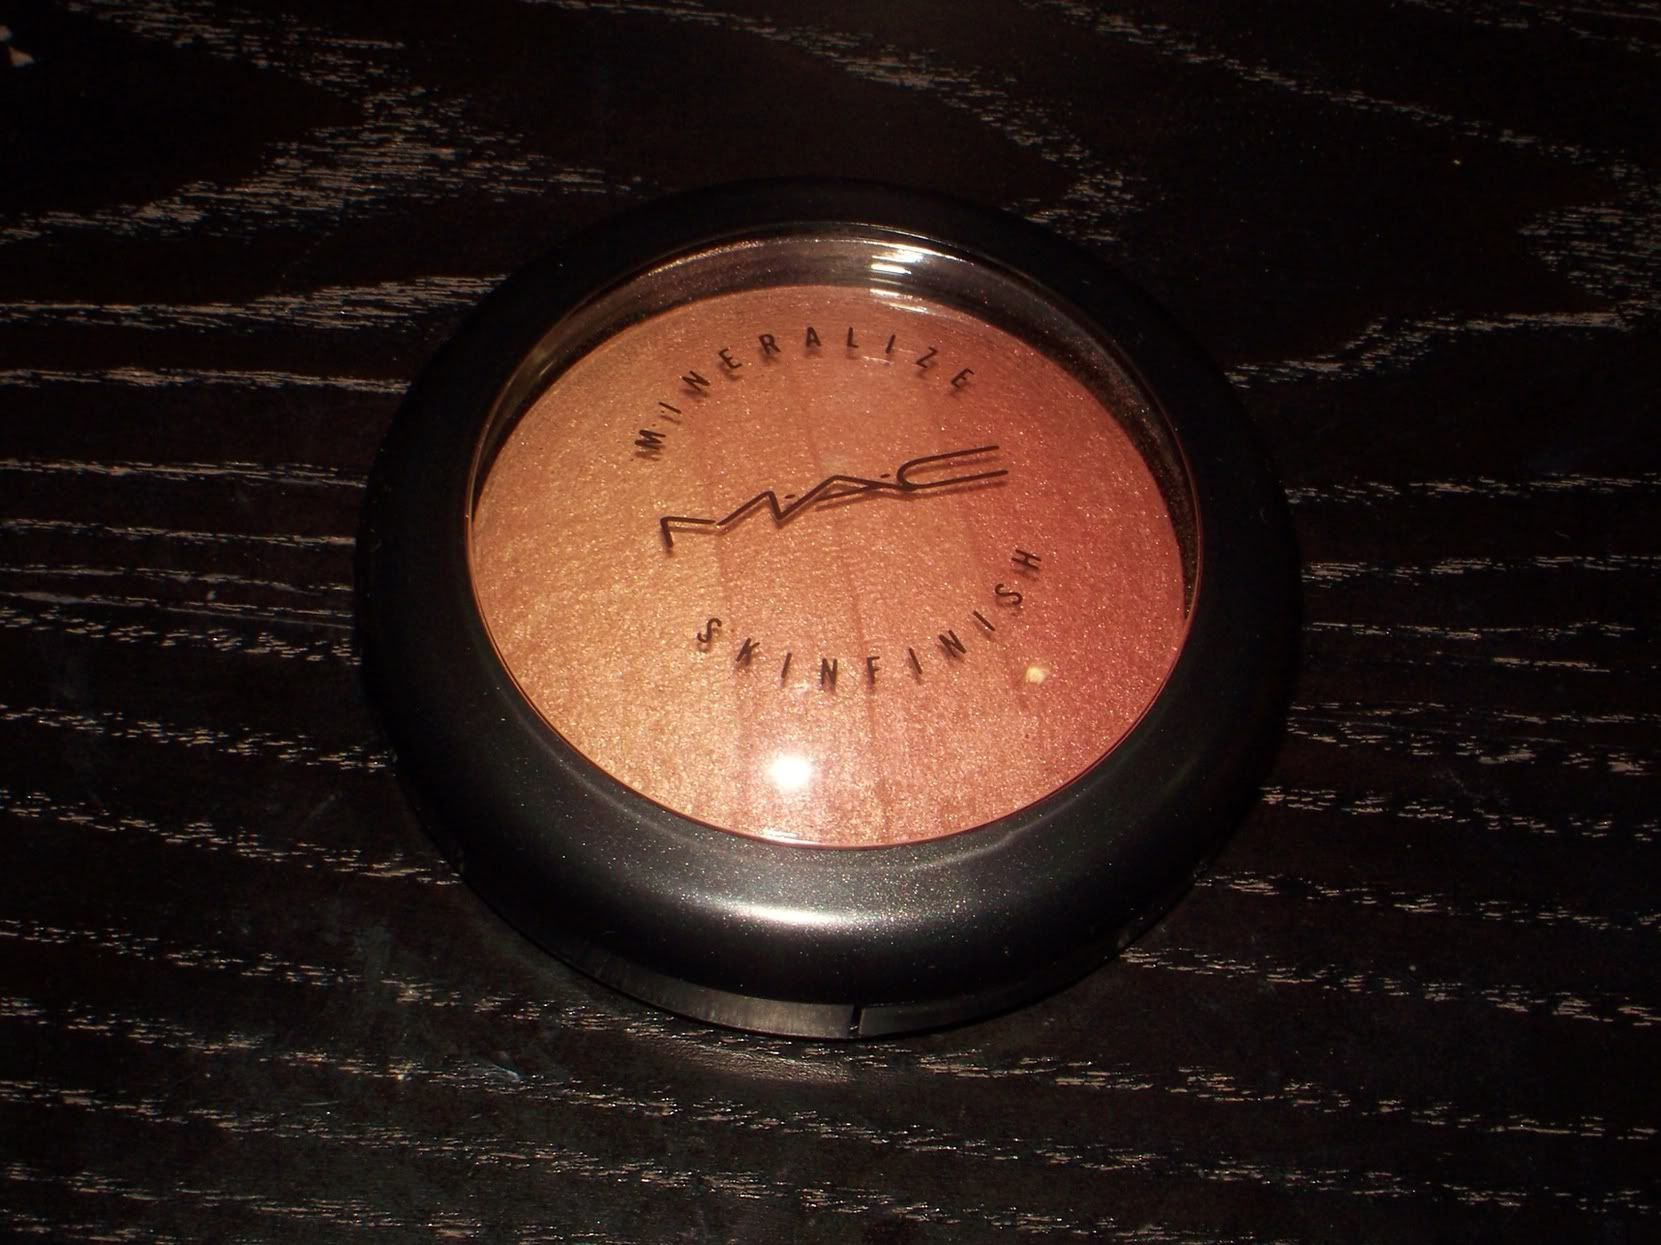 MAC Redhead Mineralize Skinfinish | Swatches and Thoughts ~ A Brilliant Brunette